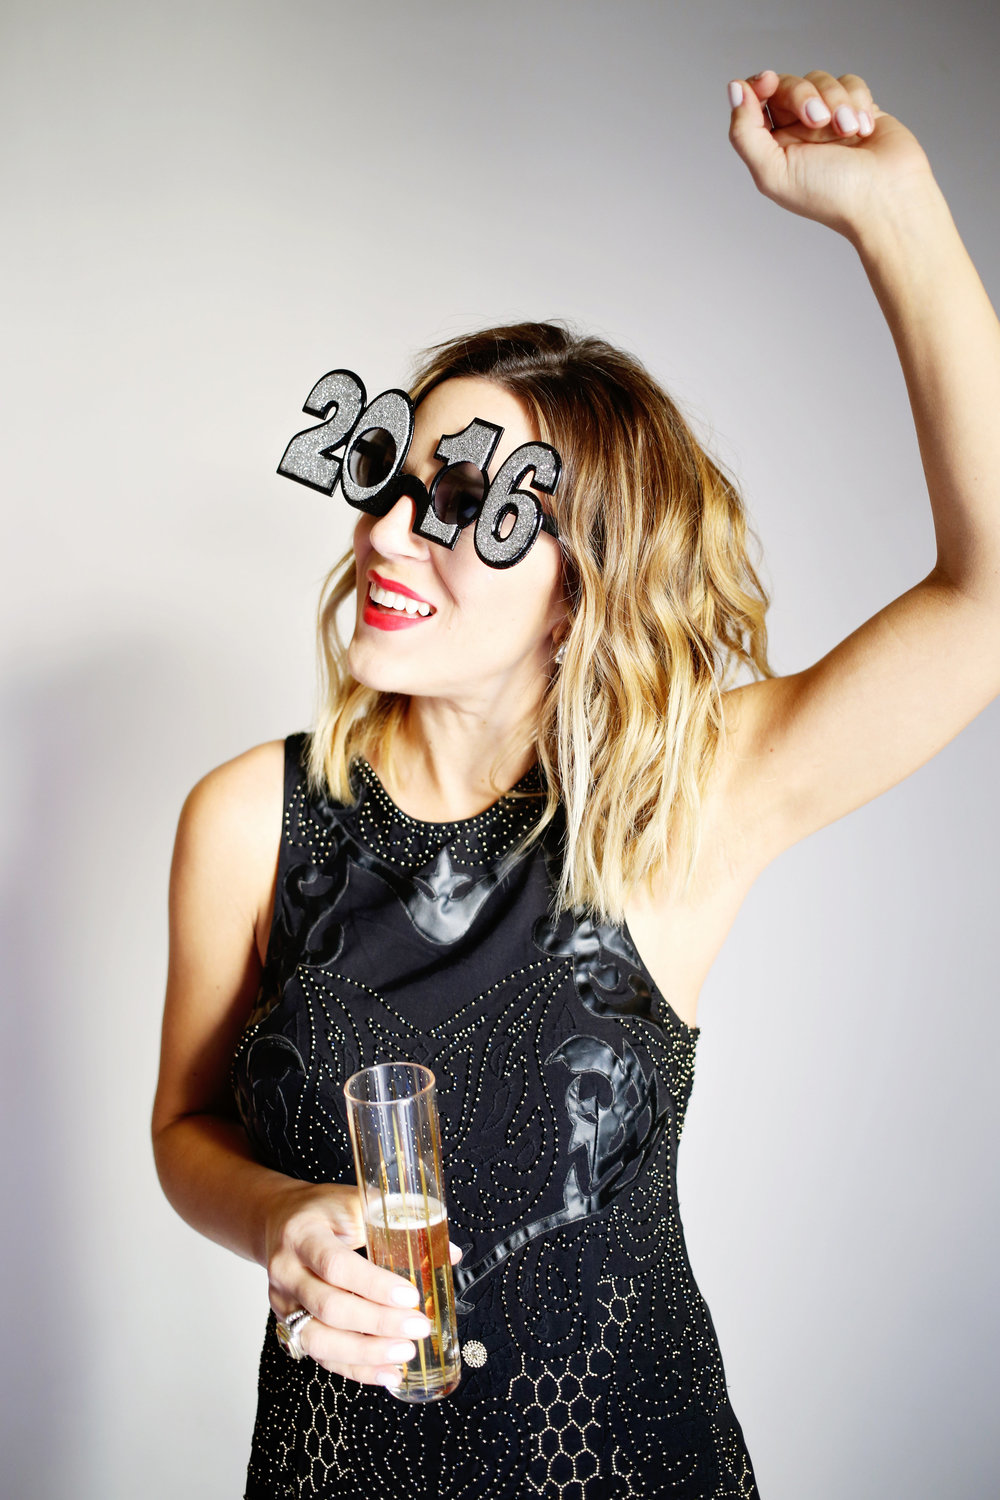 New years eve outfit by yoana baraschi 4.jpg